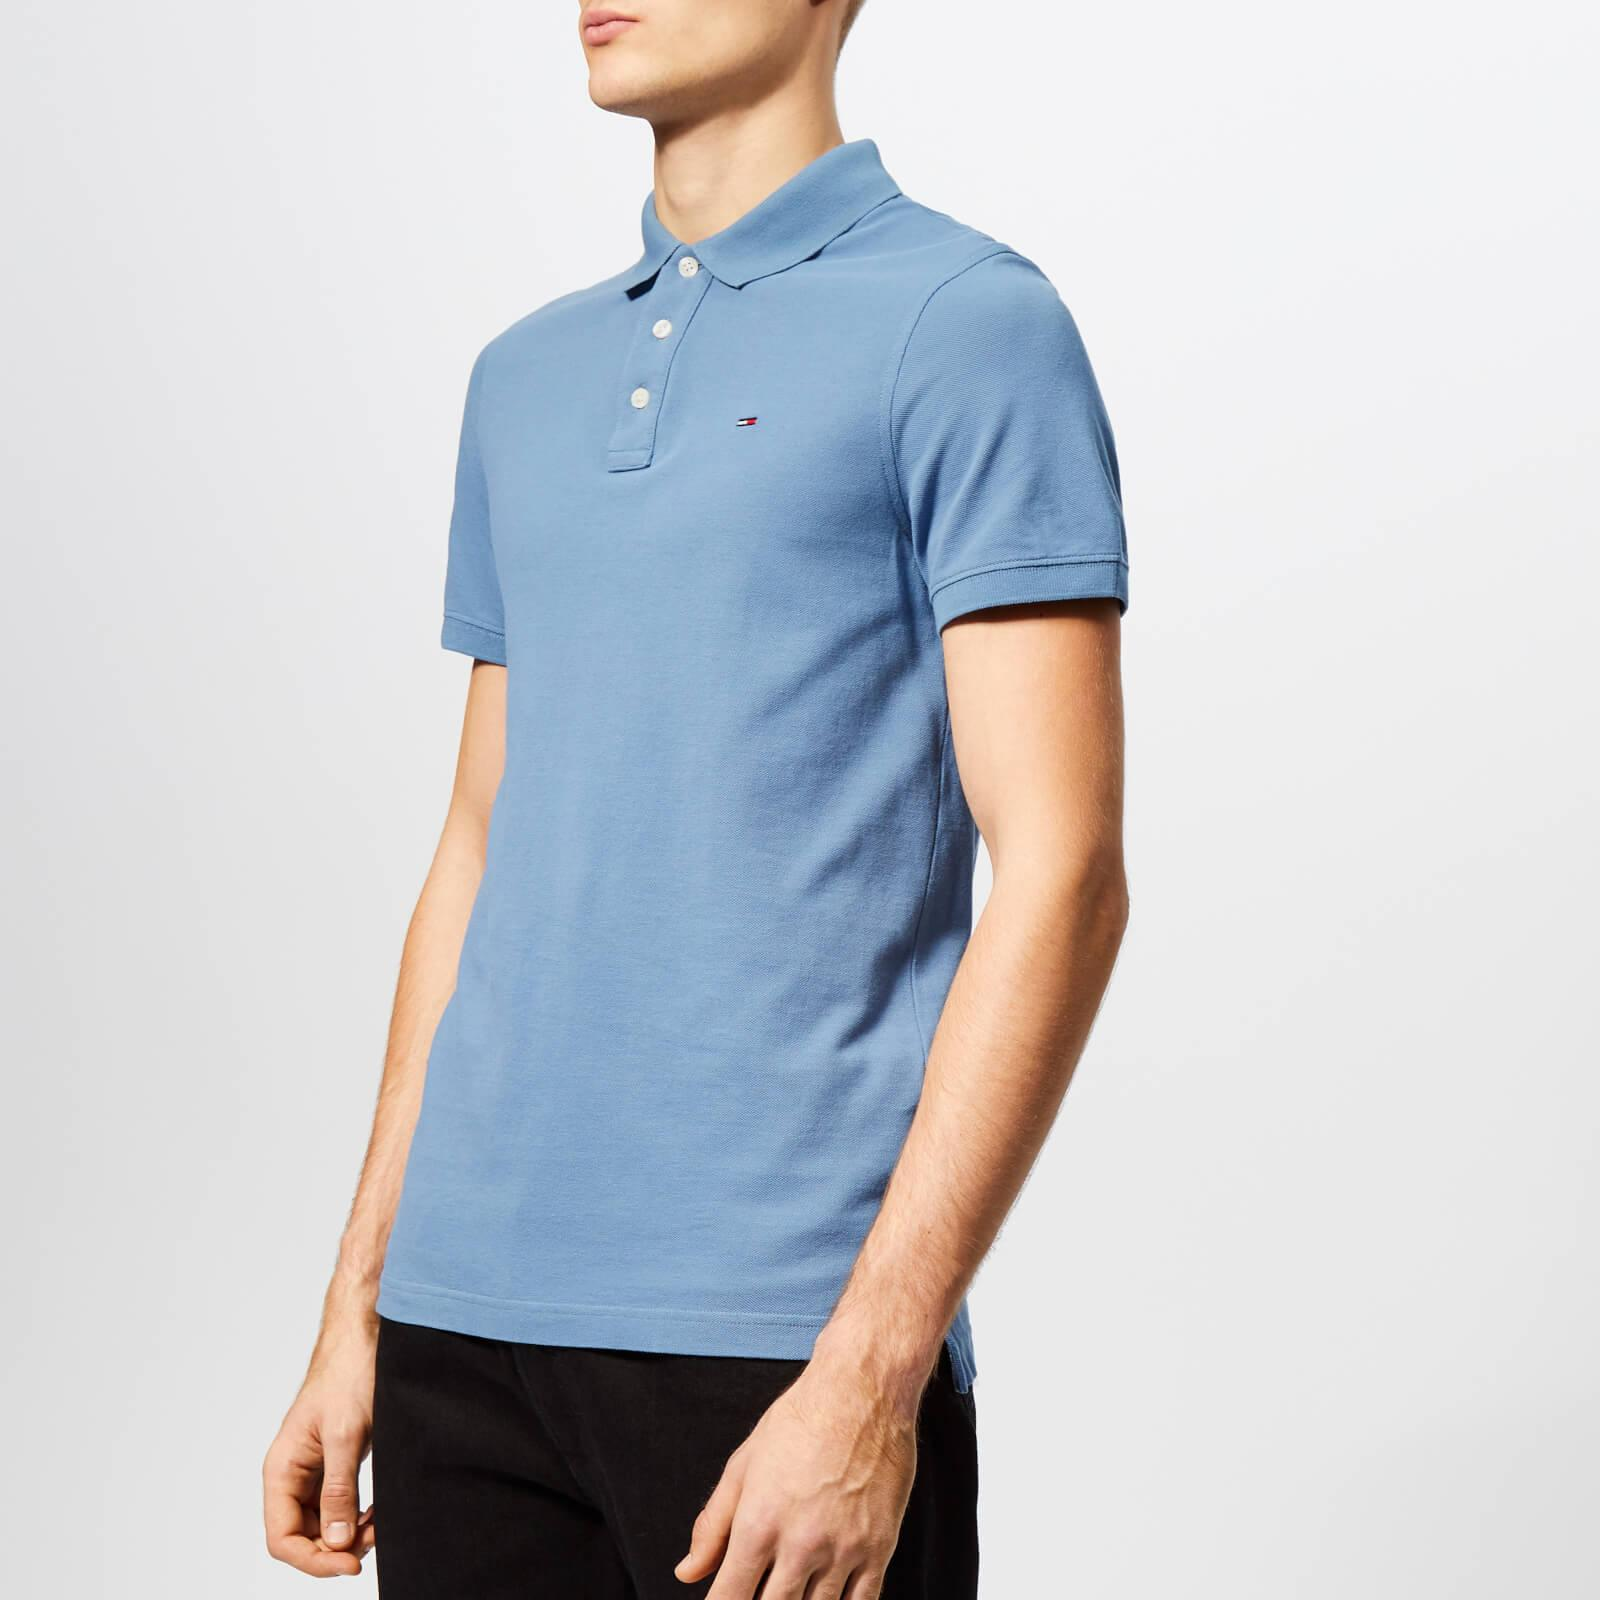 Lyst - Tommy Hilfiger Essential Polo Shirt in Blue for Men 273bd5fbf0